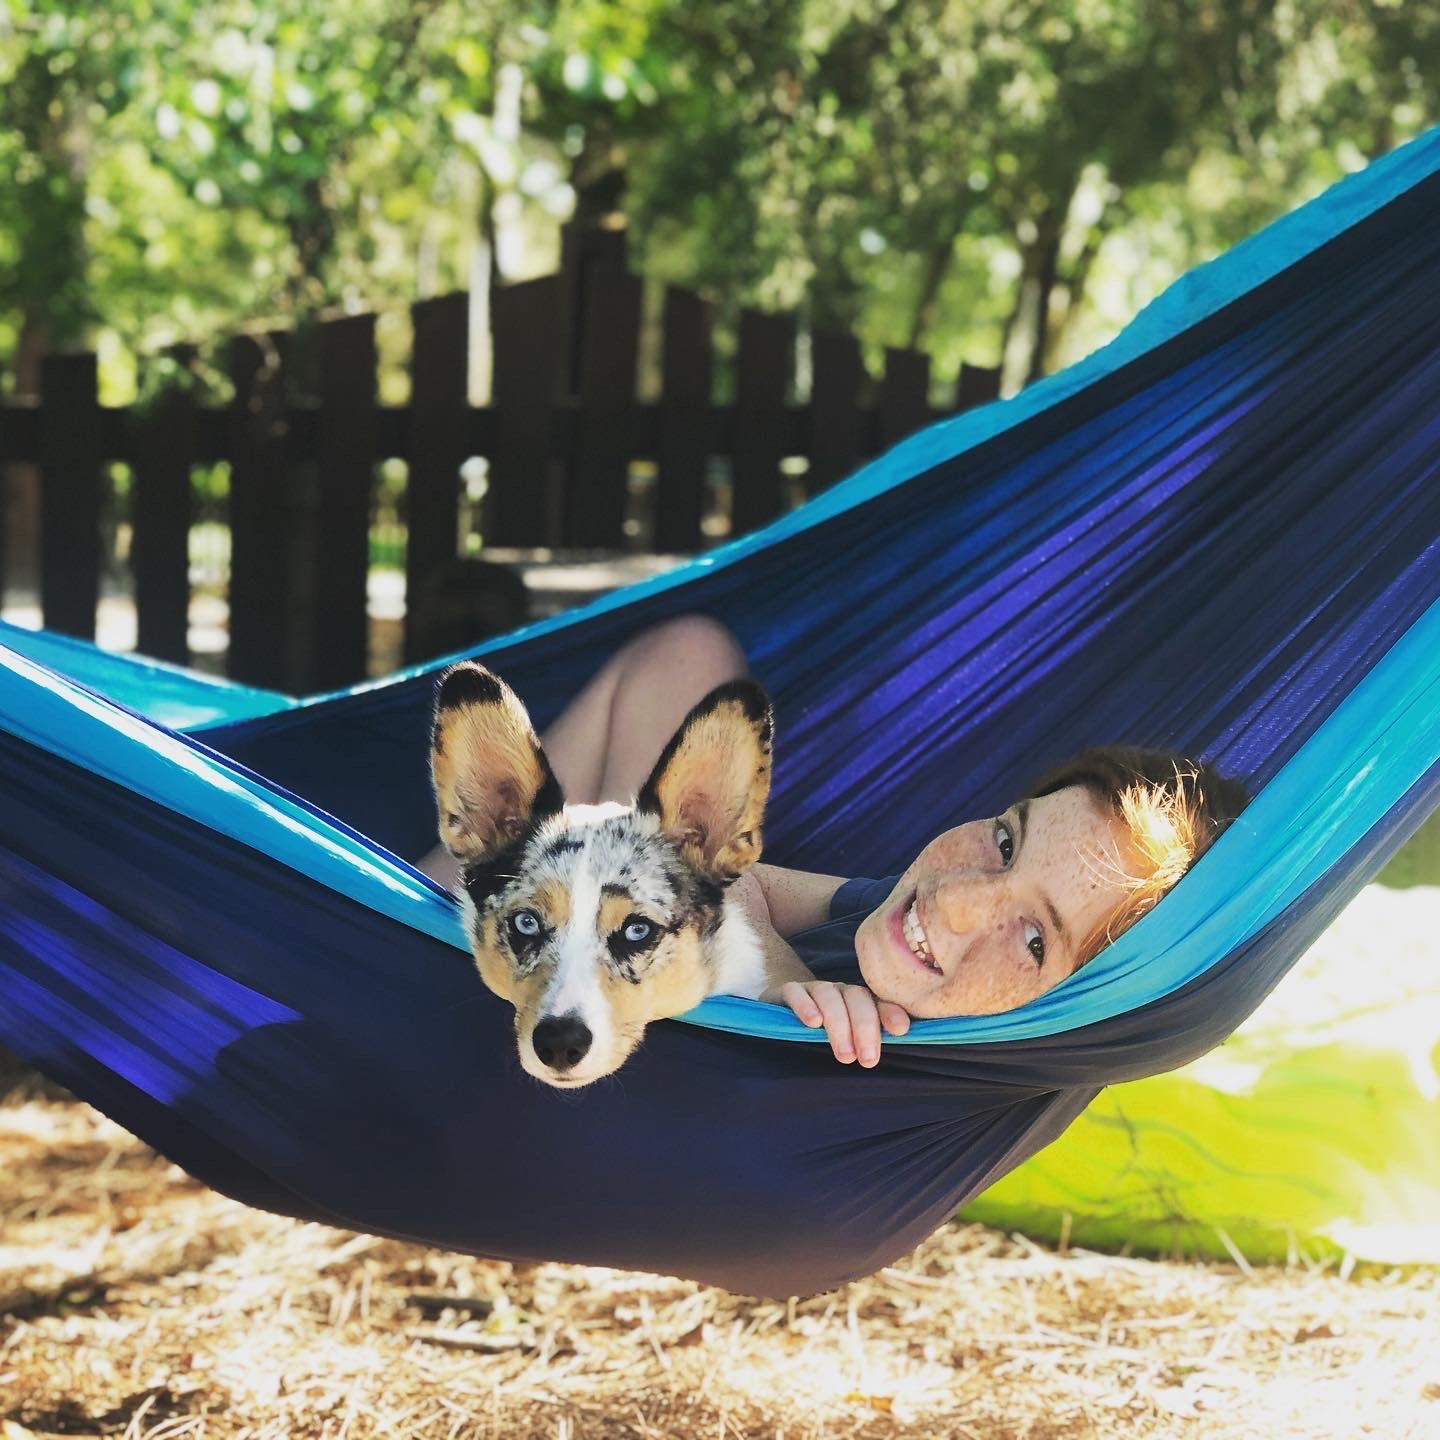 Hammocking With Your Pet